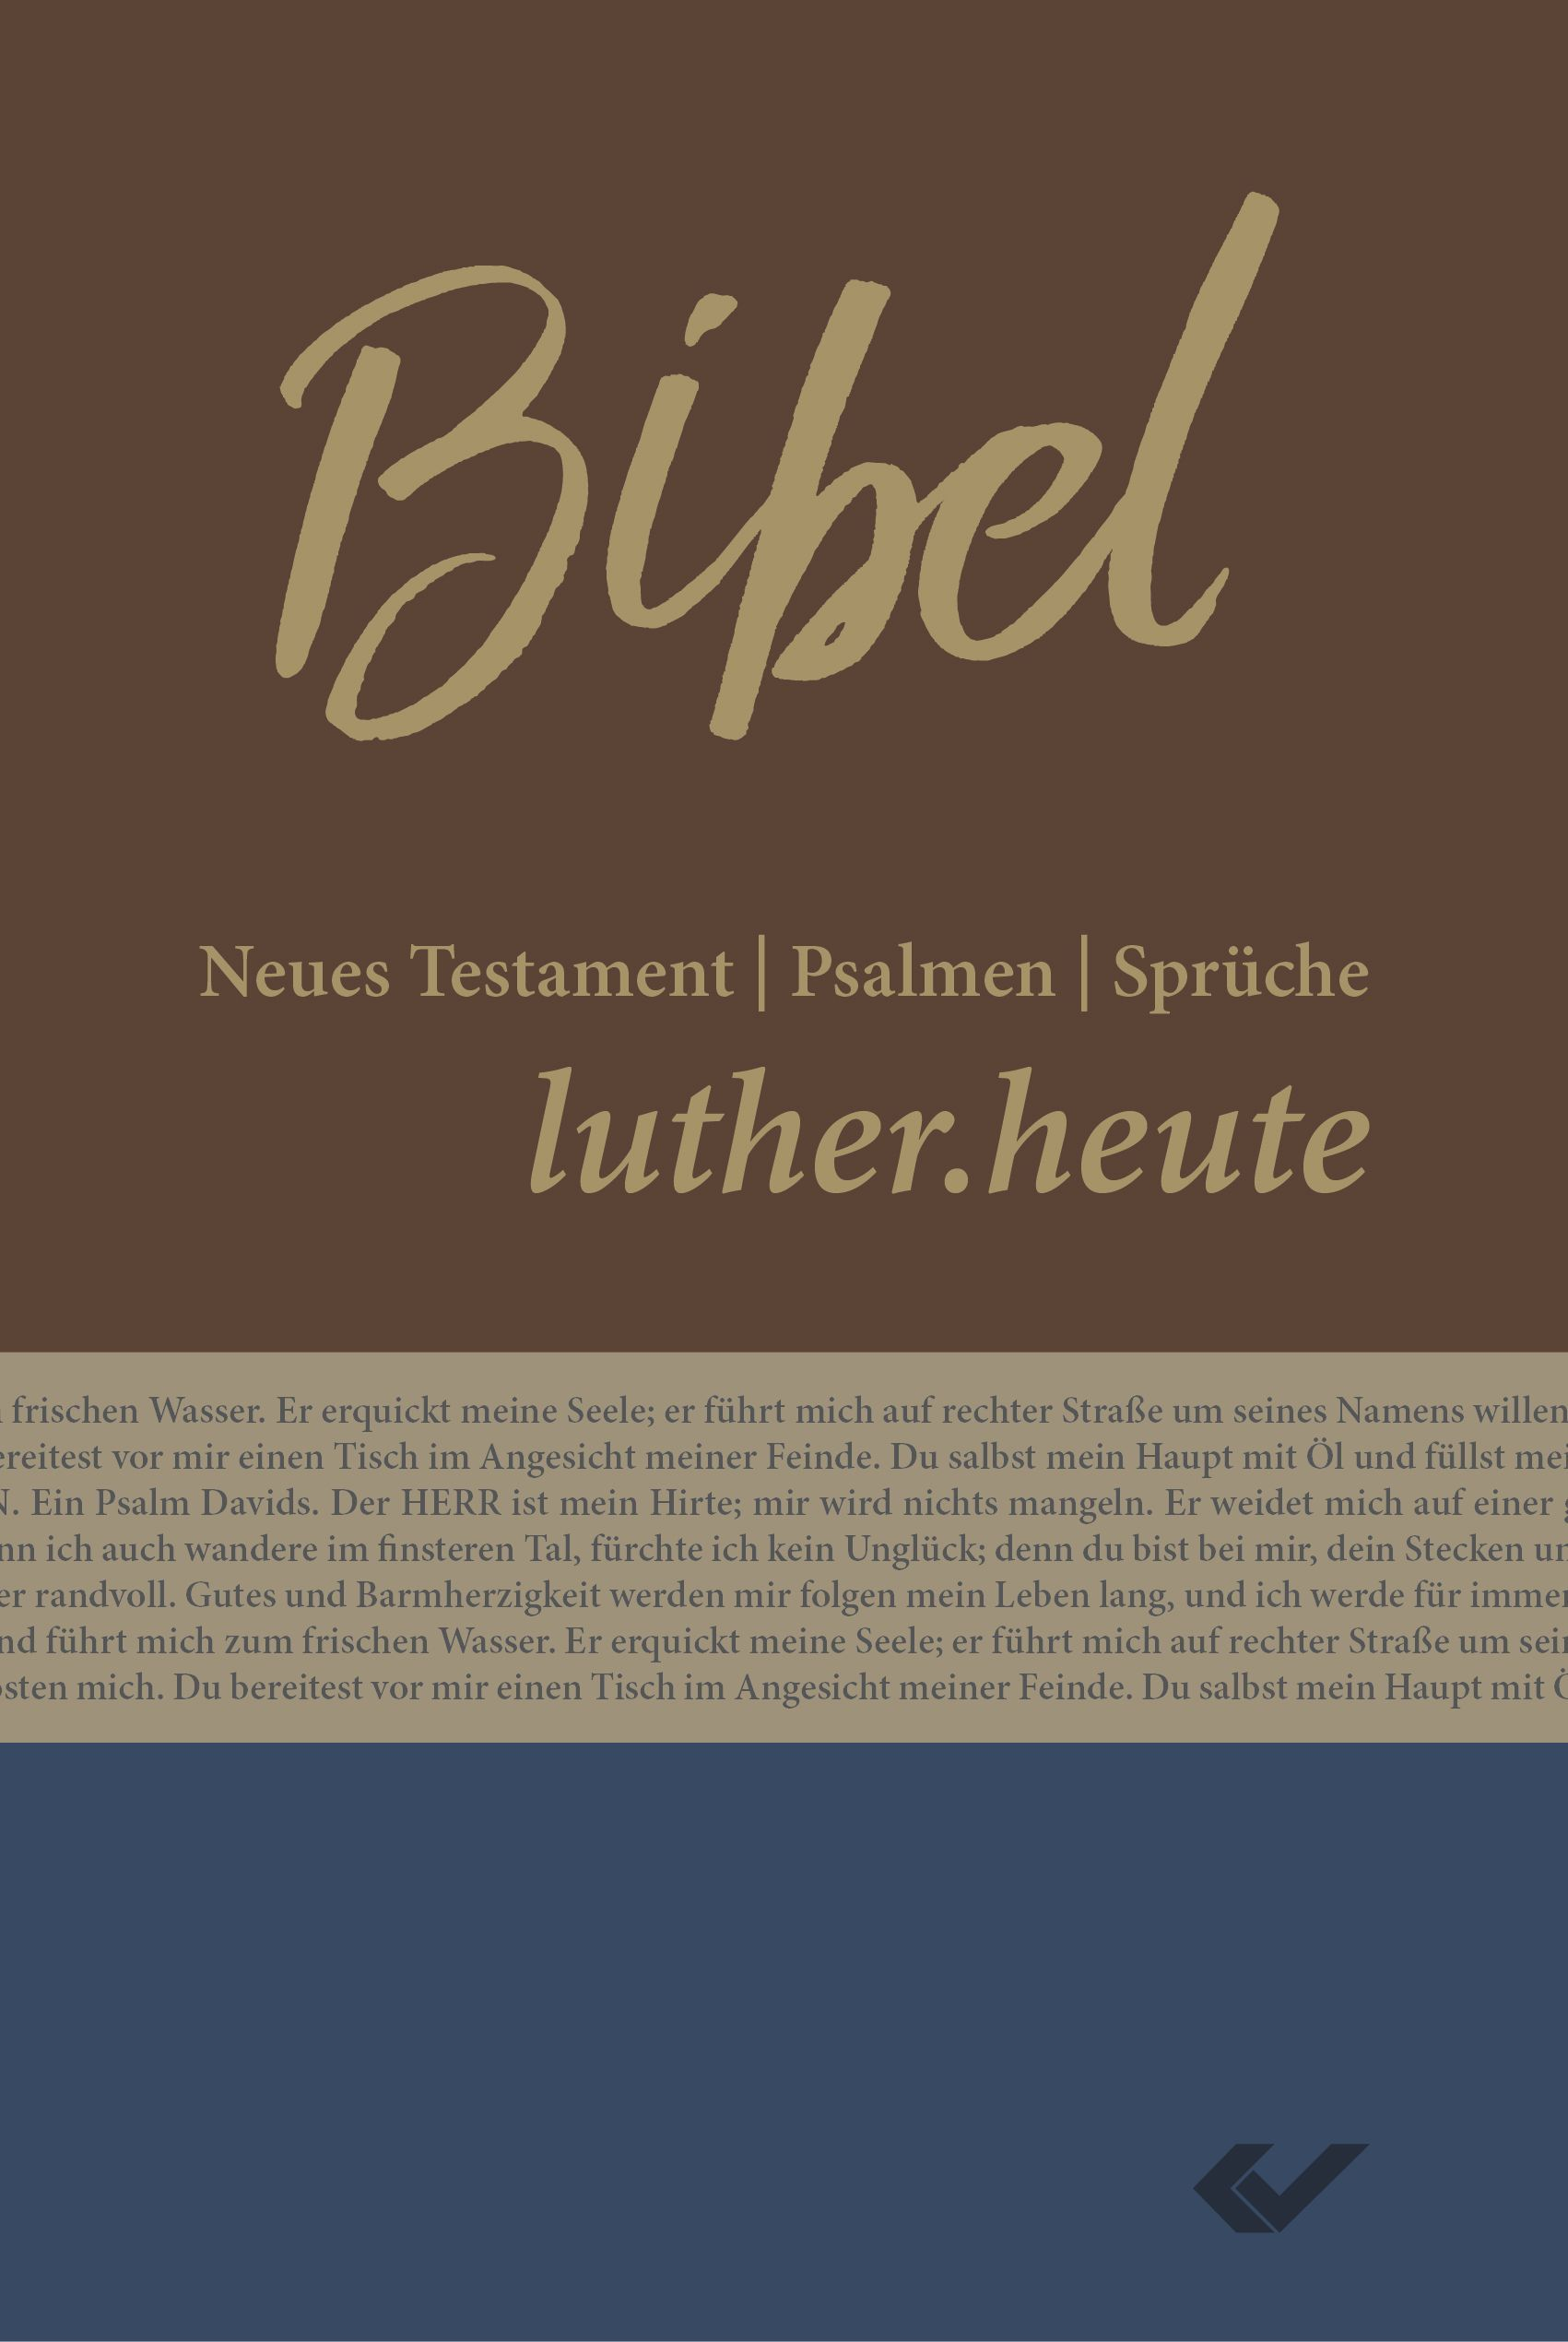 Luther.heute